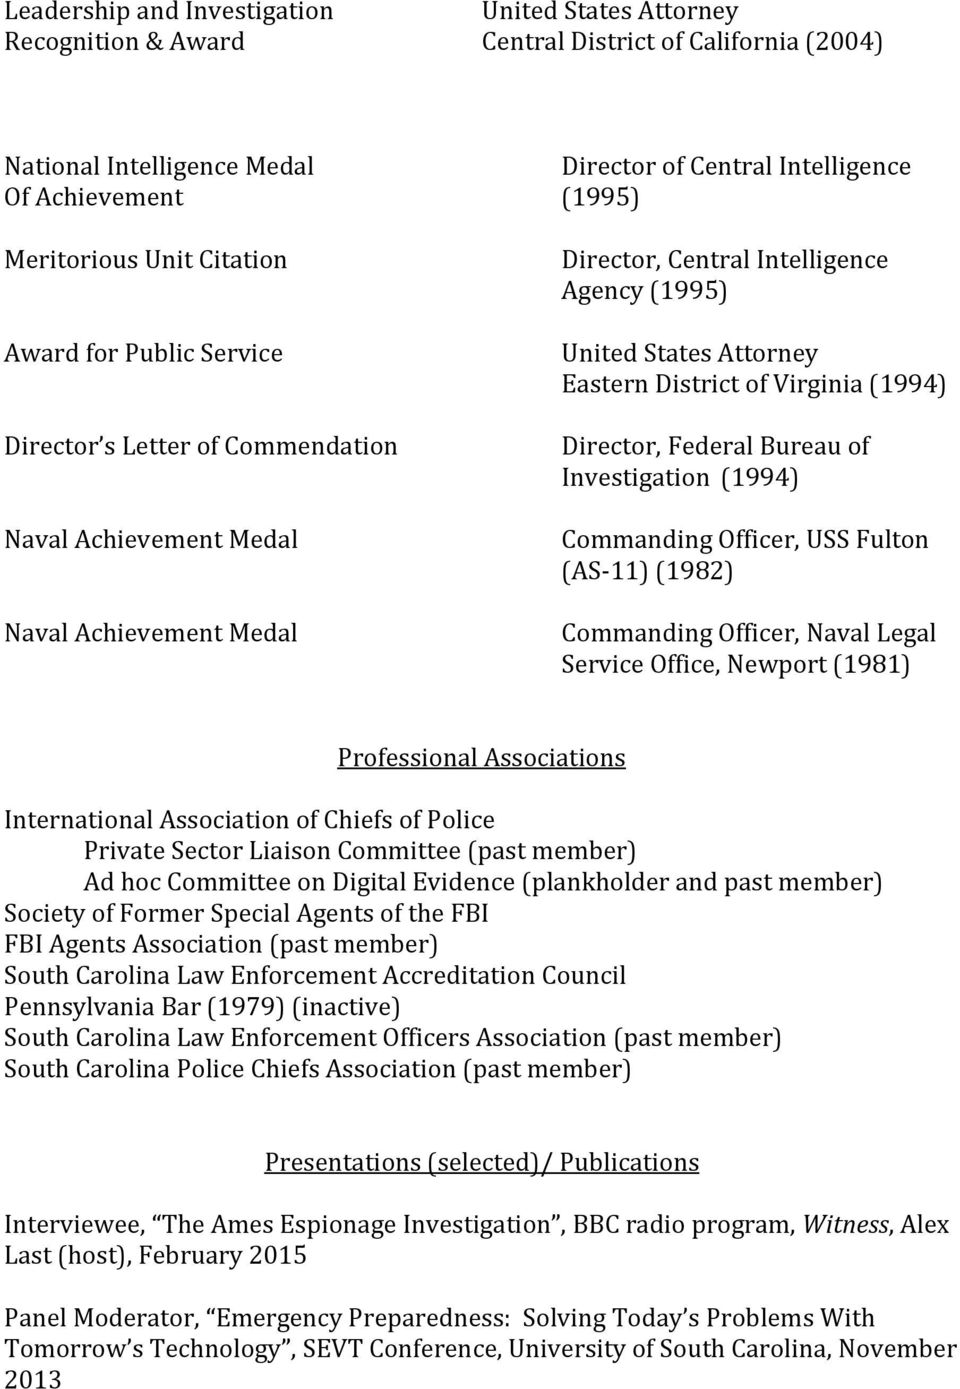 Attorney Eastern District of Virginia (1994) Director, Federal Bureau of Investigation (1994) Commanding Officer, USS Fulton (AS-11) (1982) Commanding Officer, Naval Legal Service Office, Newport